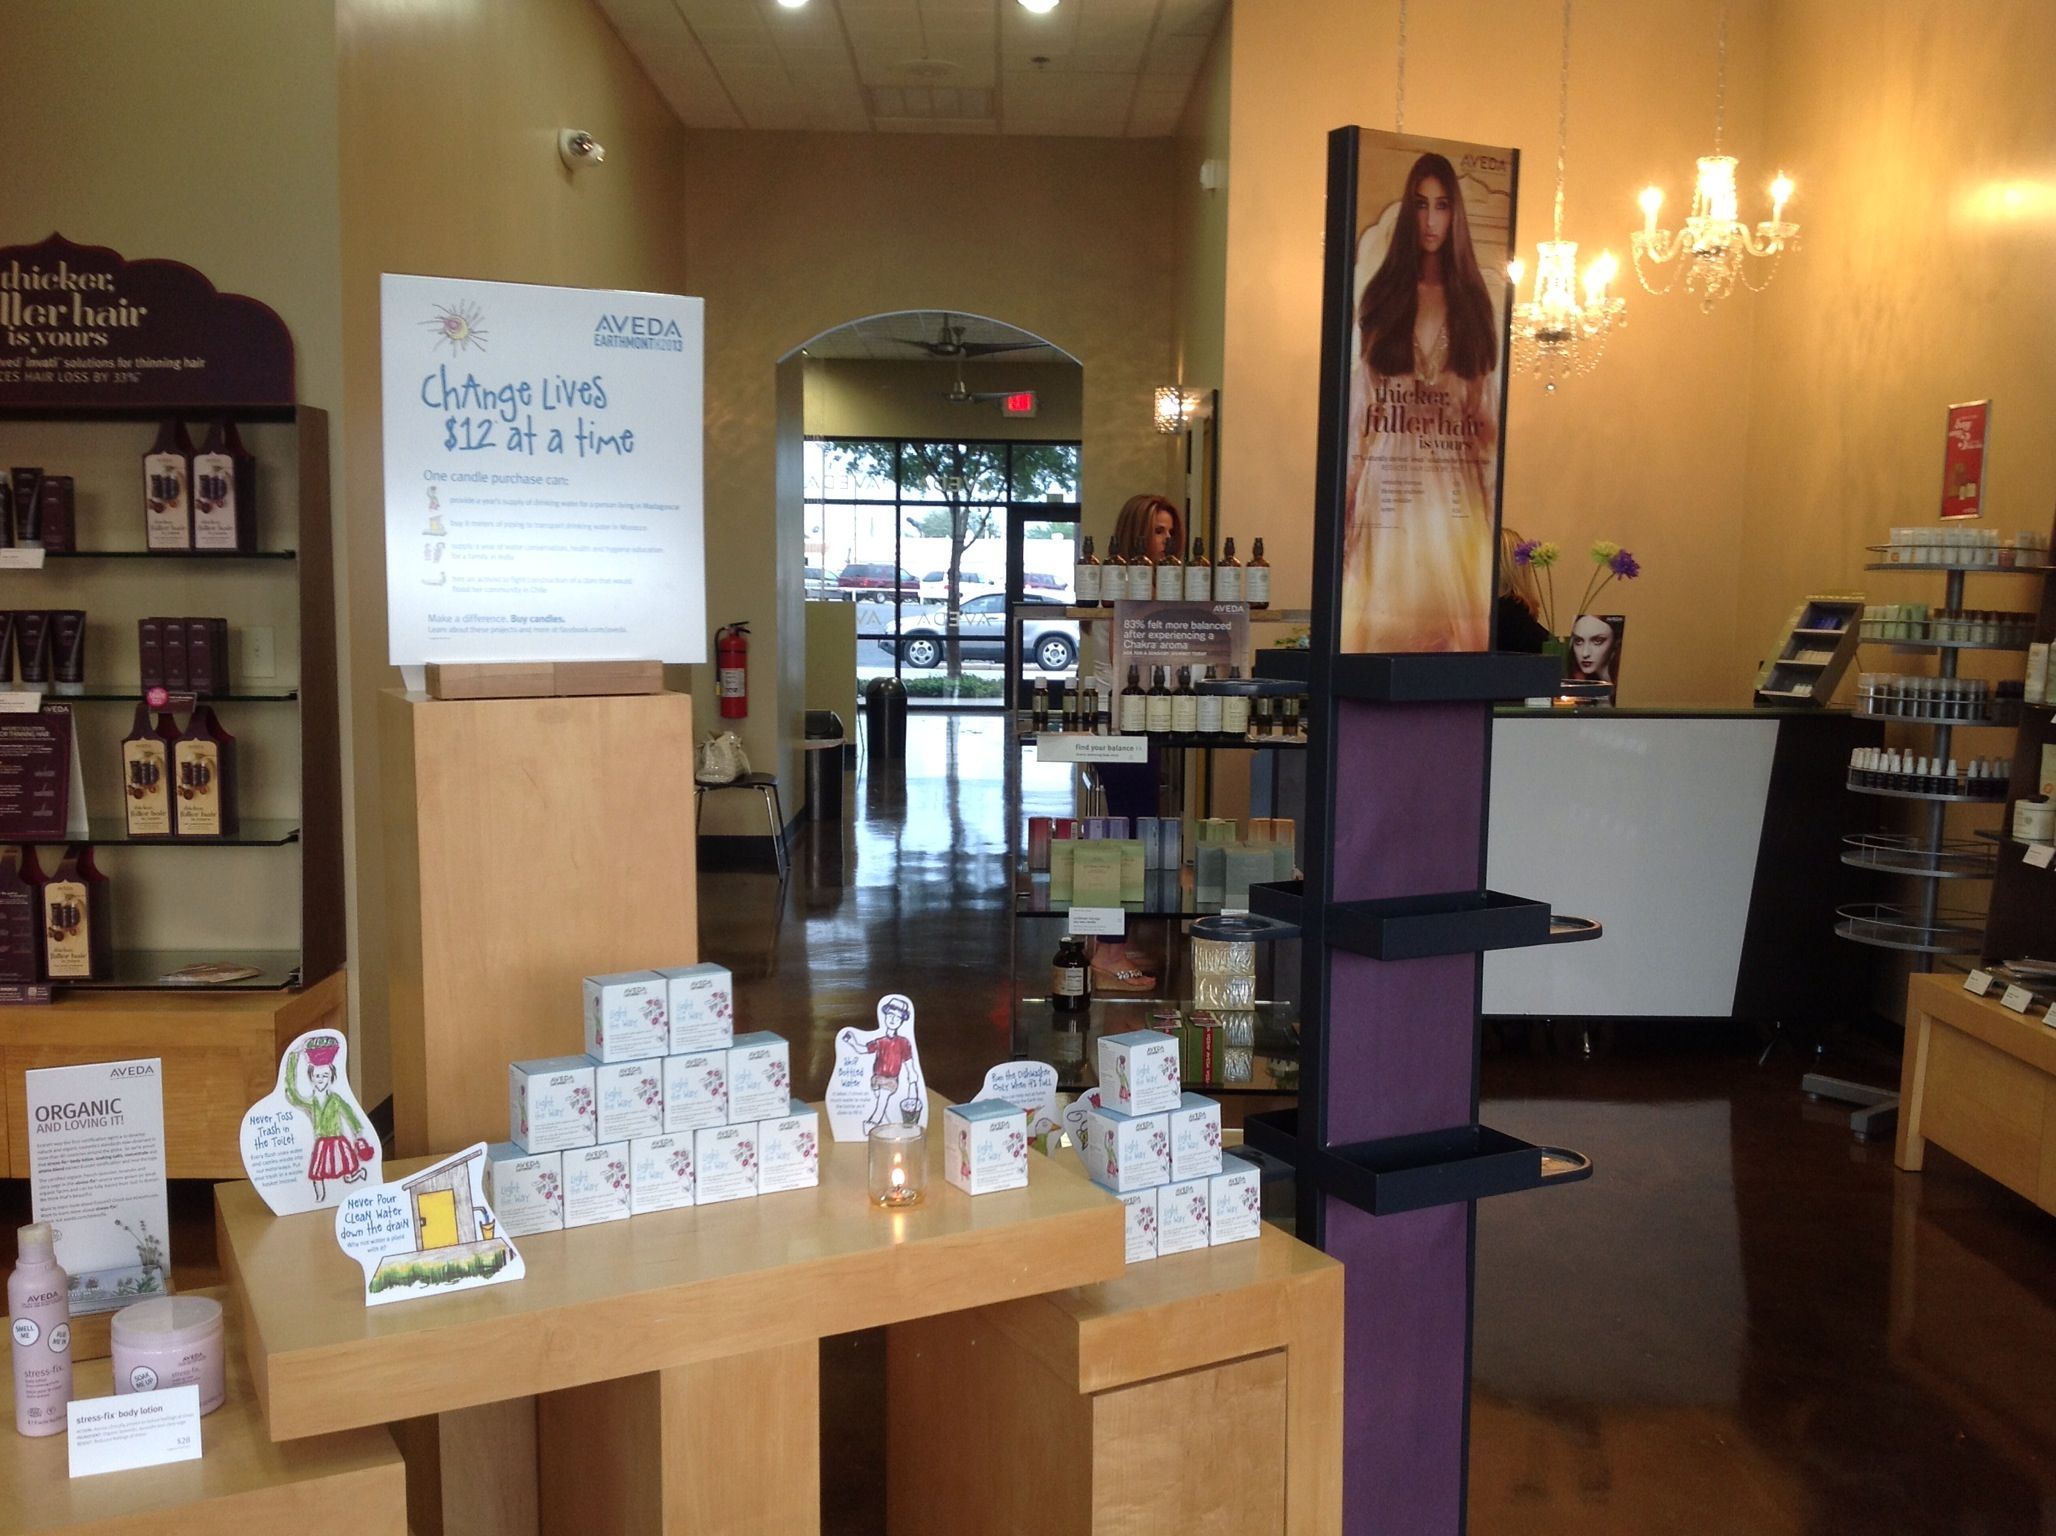 My Aveda salon in Arlington. Maren Karsen Salon. 200 N. Mesquite St. Arlington, Tx. 76011 817-275-8686